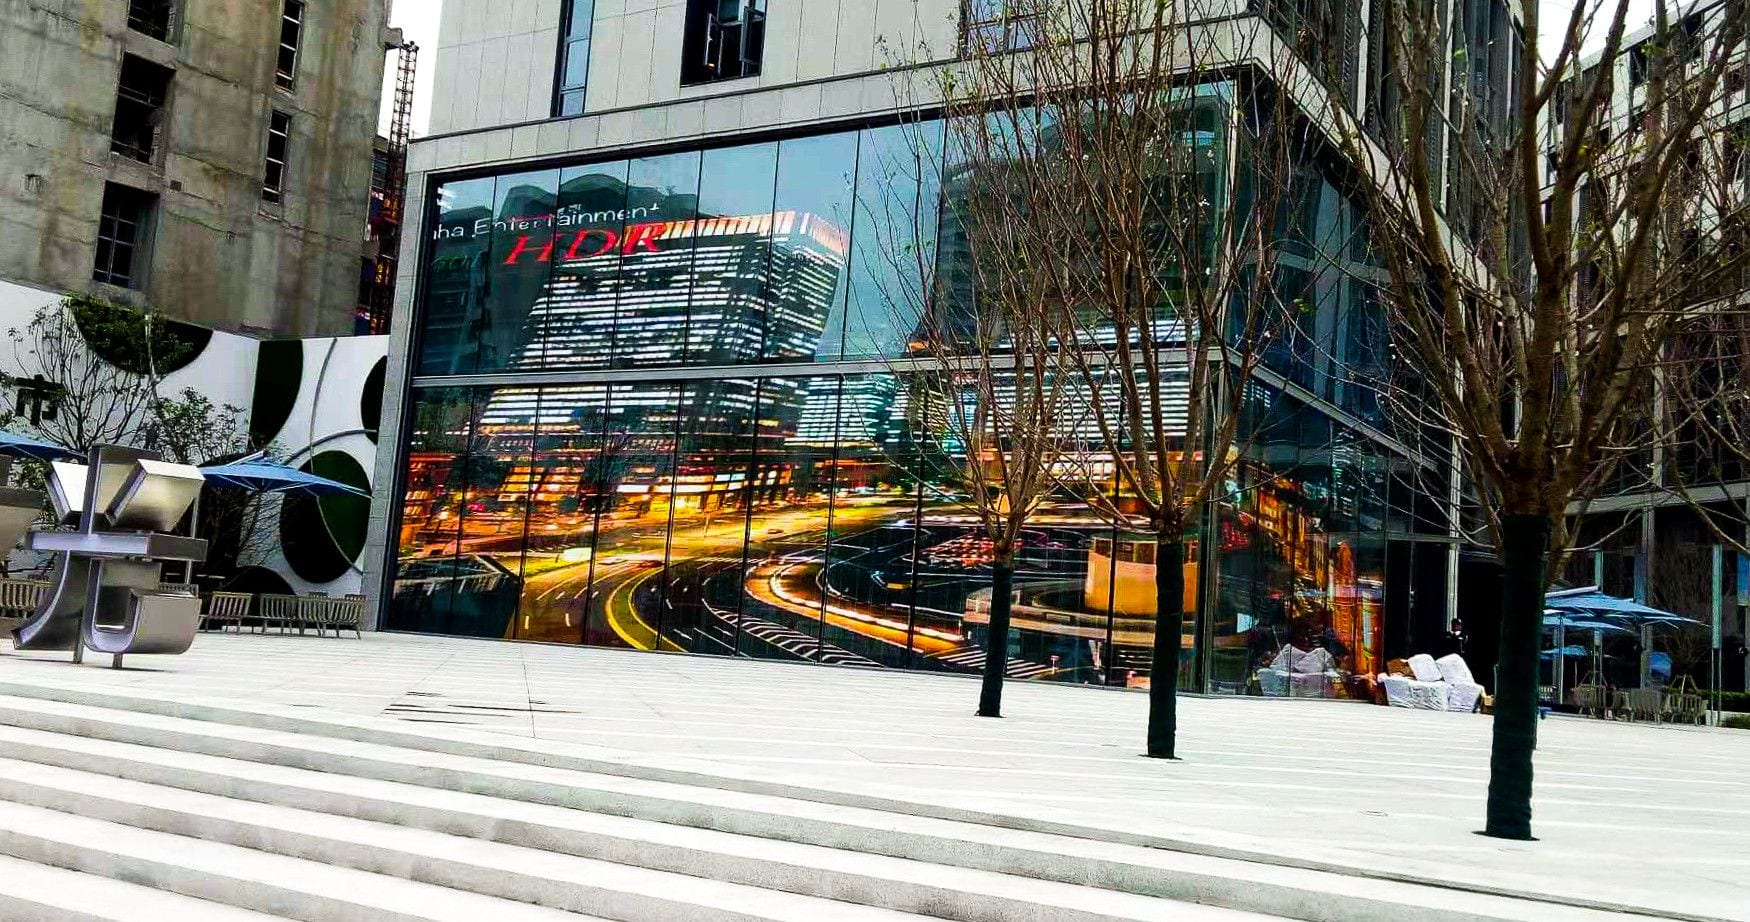 6 Reasons Transparent LED Displays Are So Popular